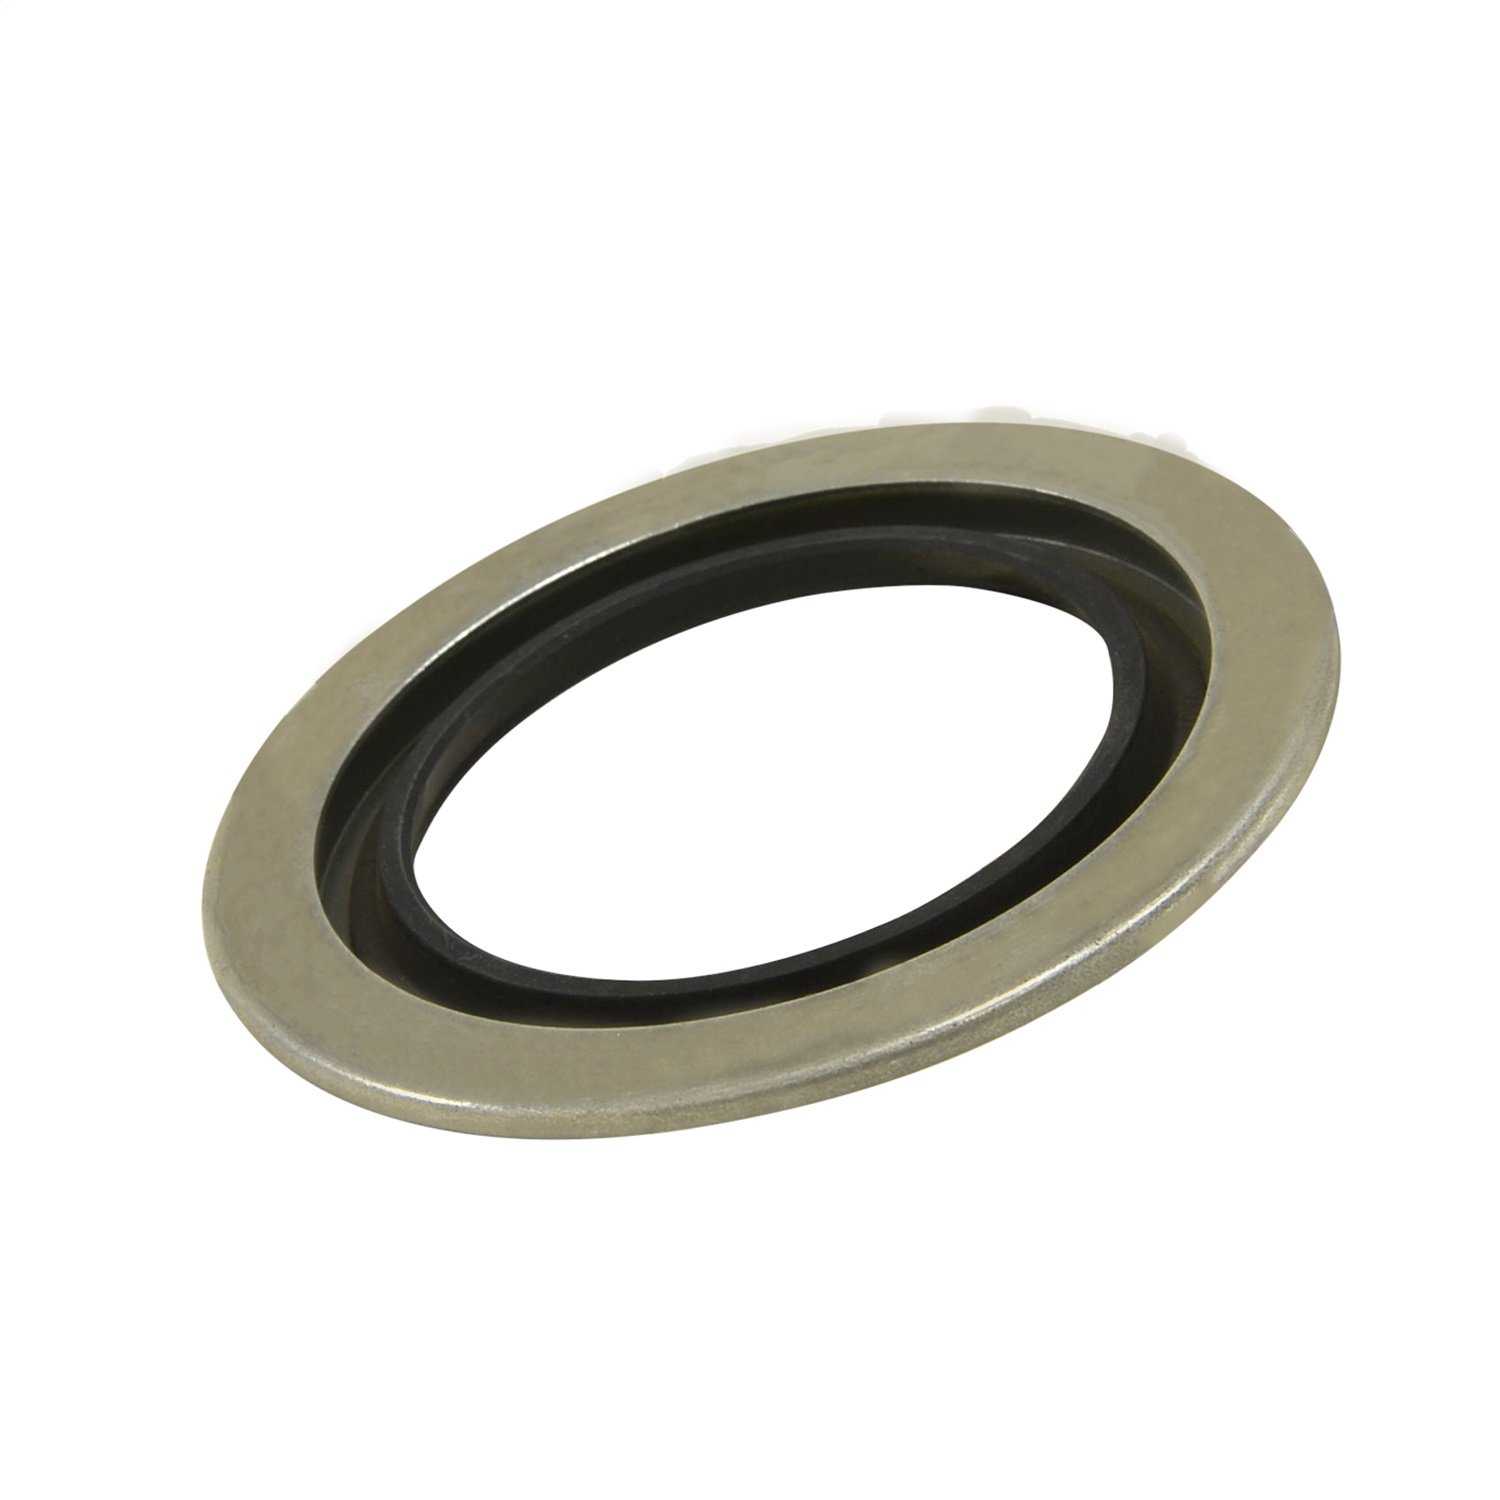 Yukon (YMS710430) 2-Piece Front Hub Seal for Ford F150 Differential by Yukon Gear